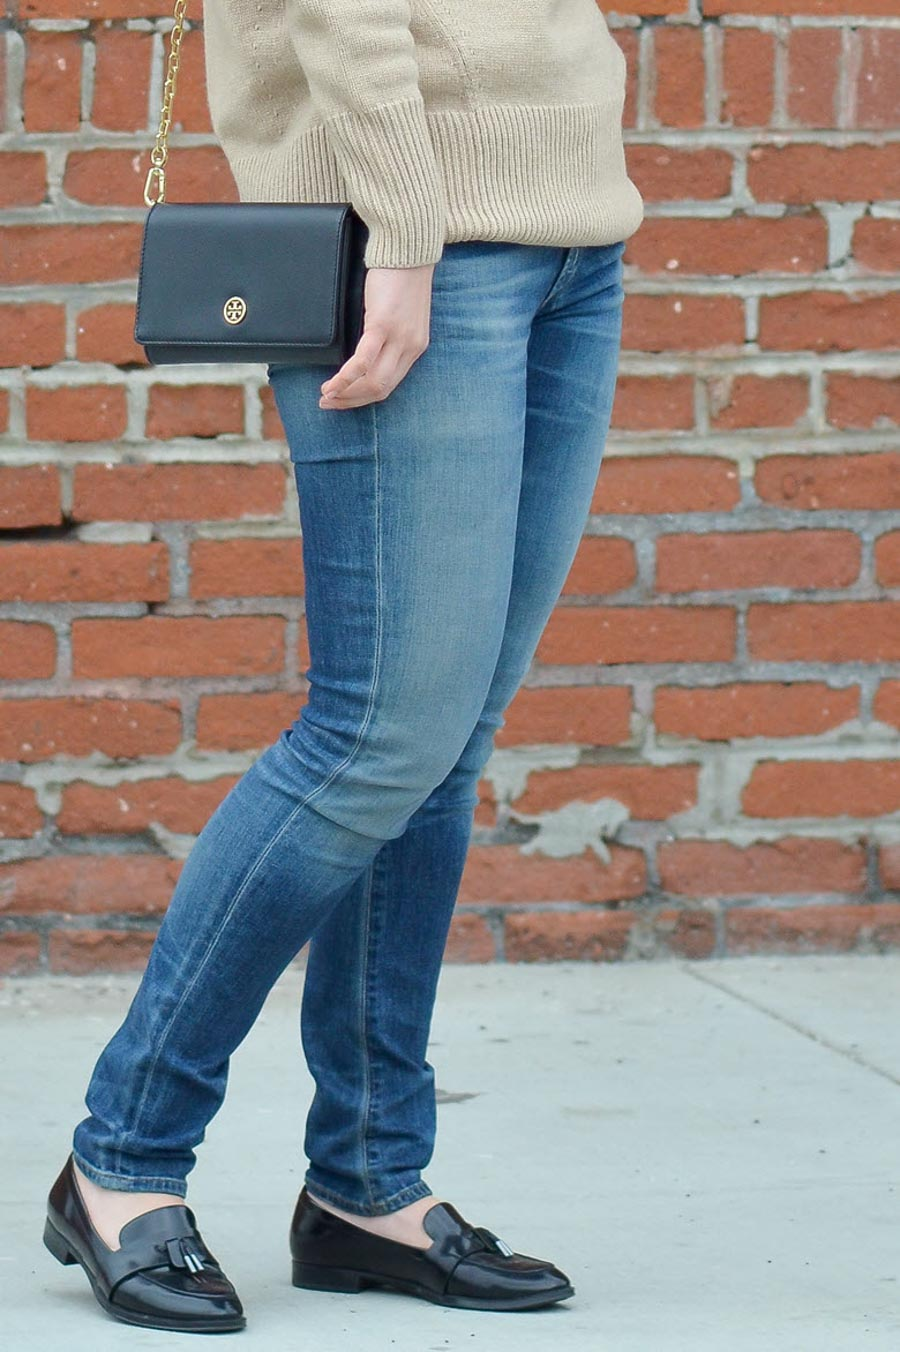 Cheap Skinny Jeans + Black Jeans Under $50 and $100